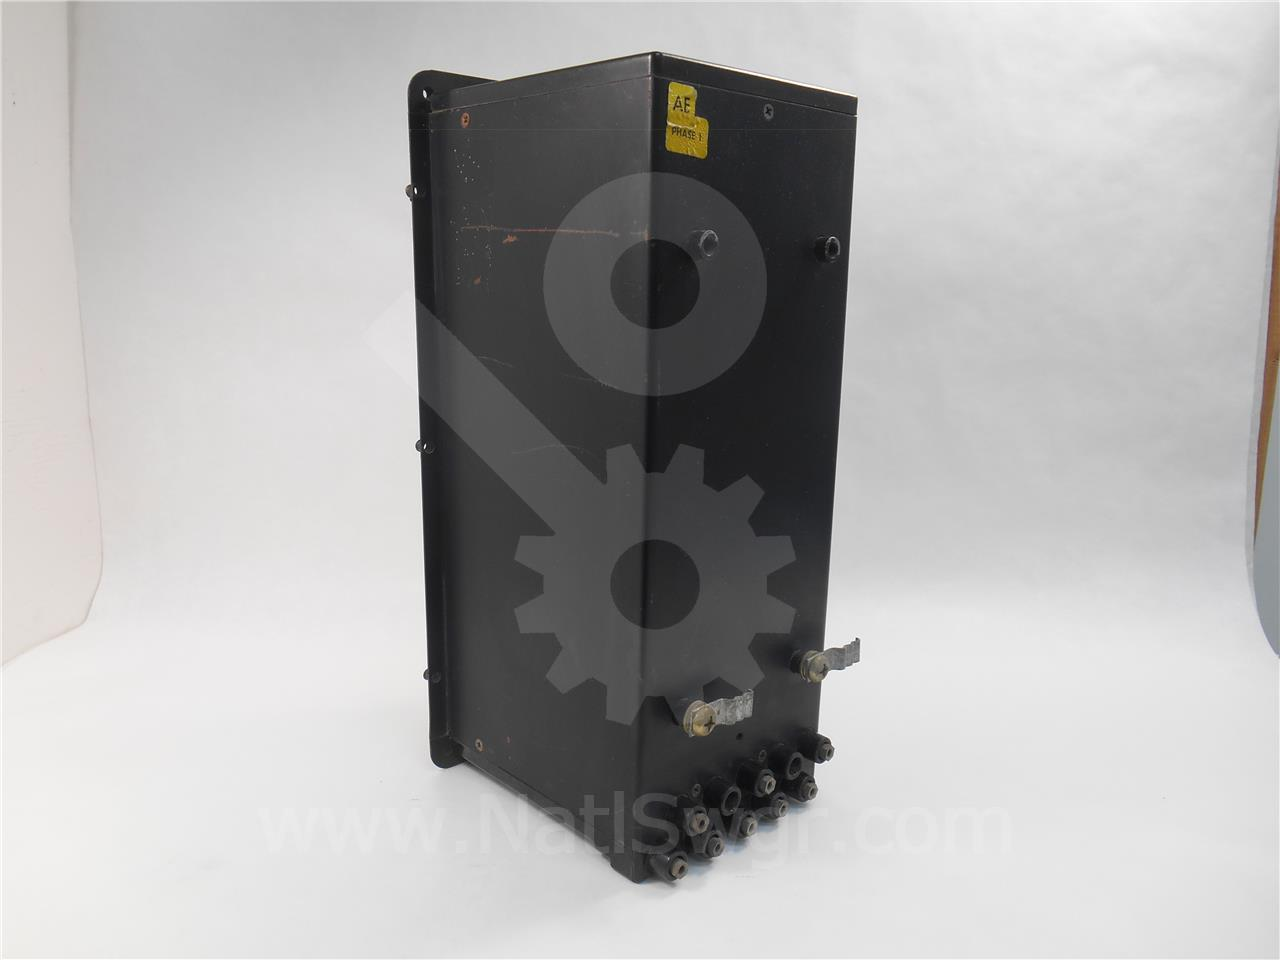 12STD15B5A GE / General Electric STD TRANSFORMER DIFFERENTIAL RELAY